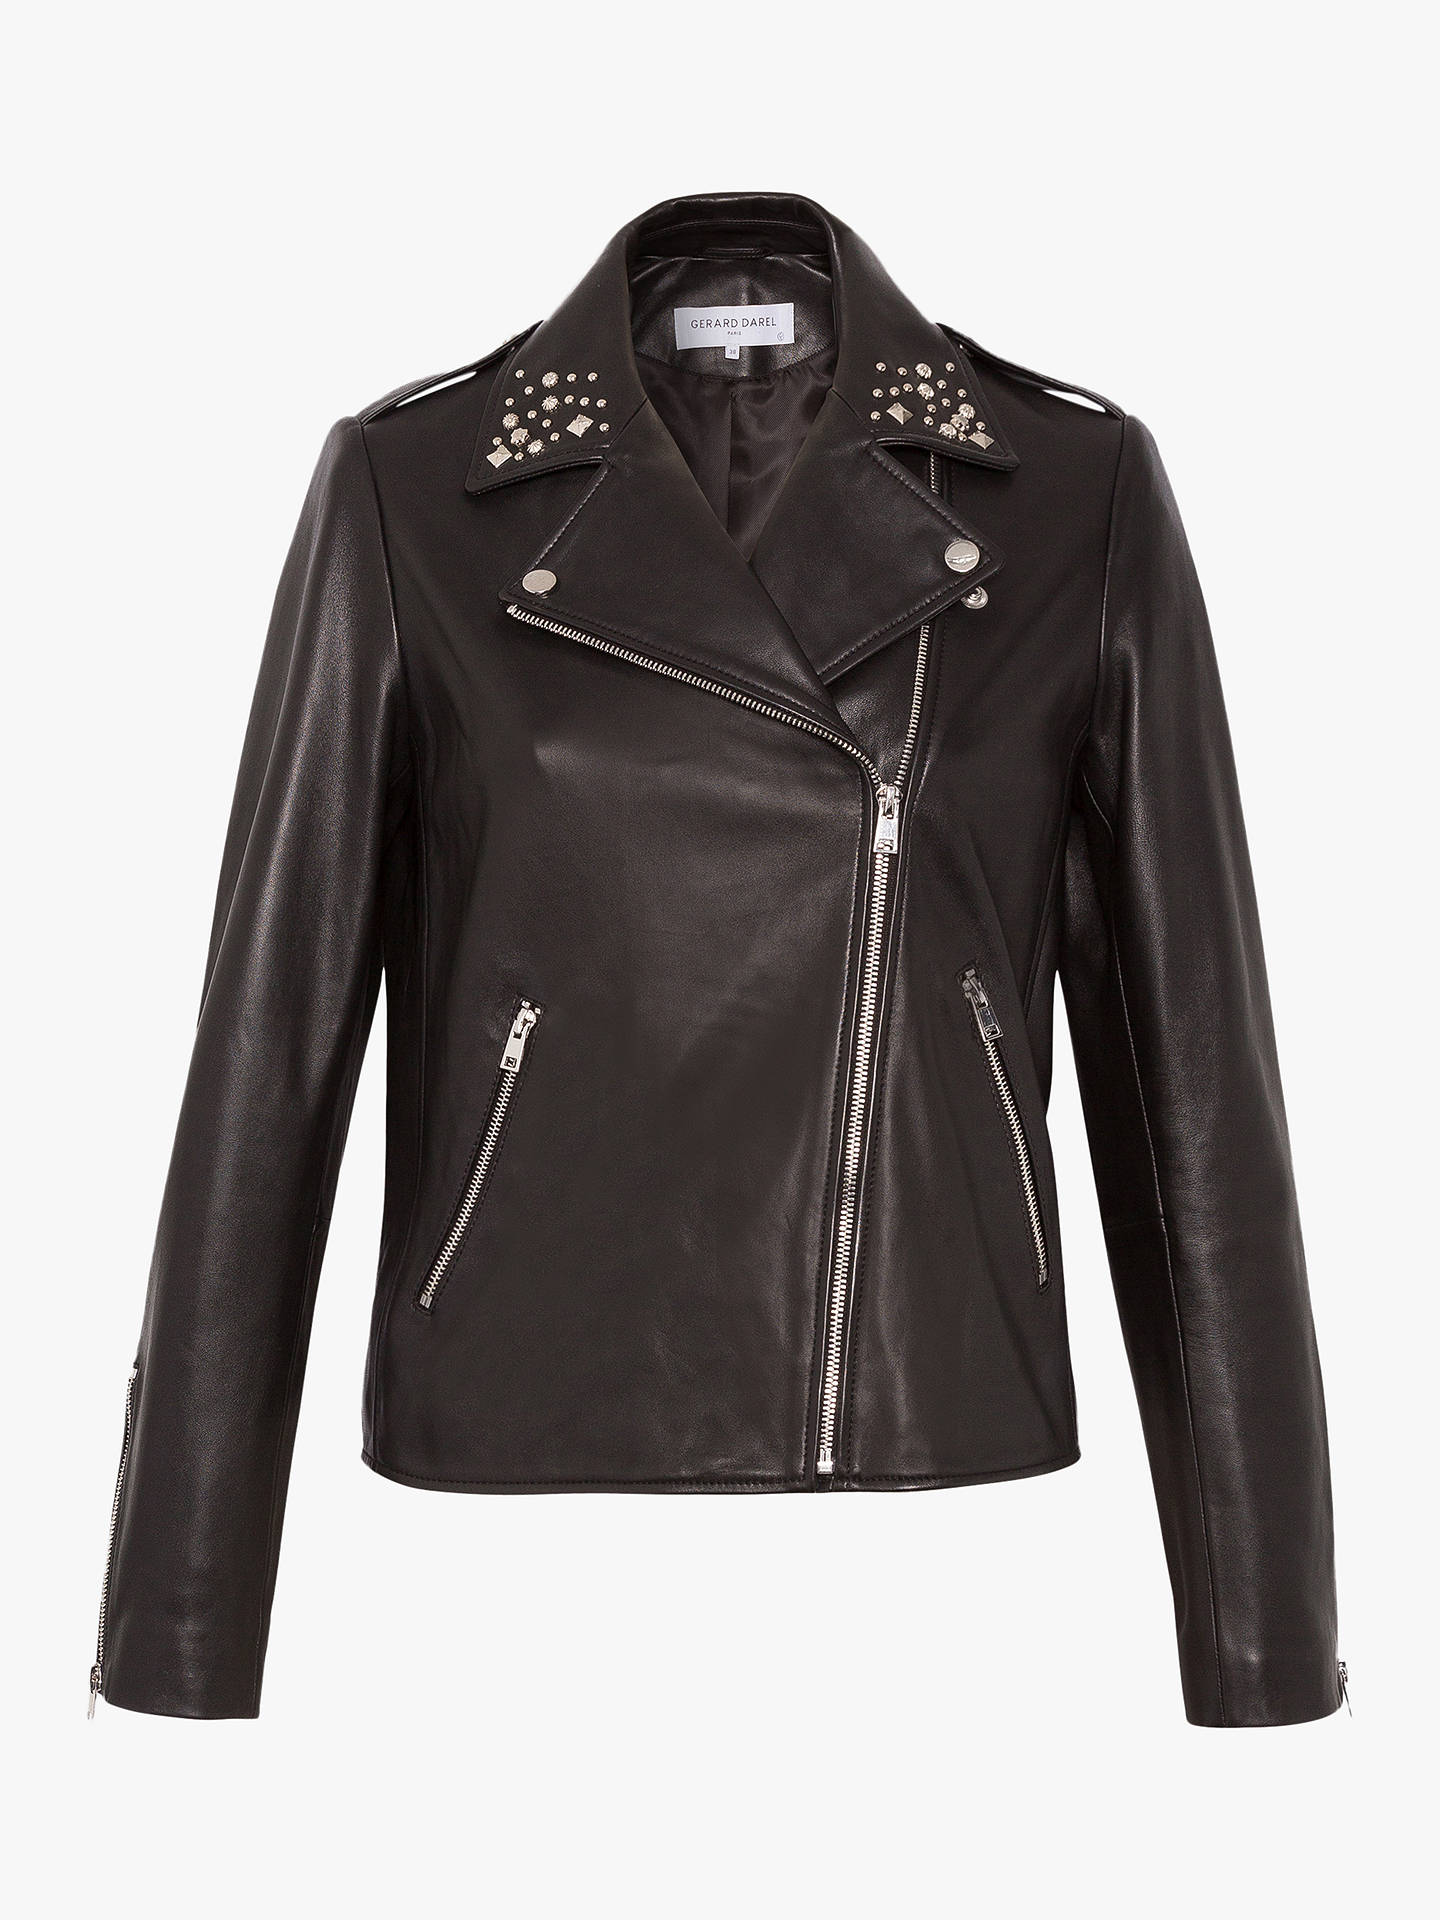 bc12f8fd667f Buy Gerard Darel Leather Garment Nathan Jacket, Black, 8 Online at  johnlewis.com